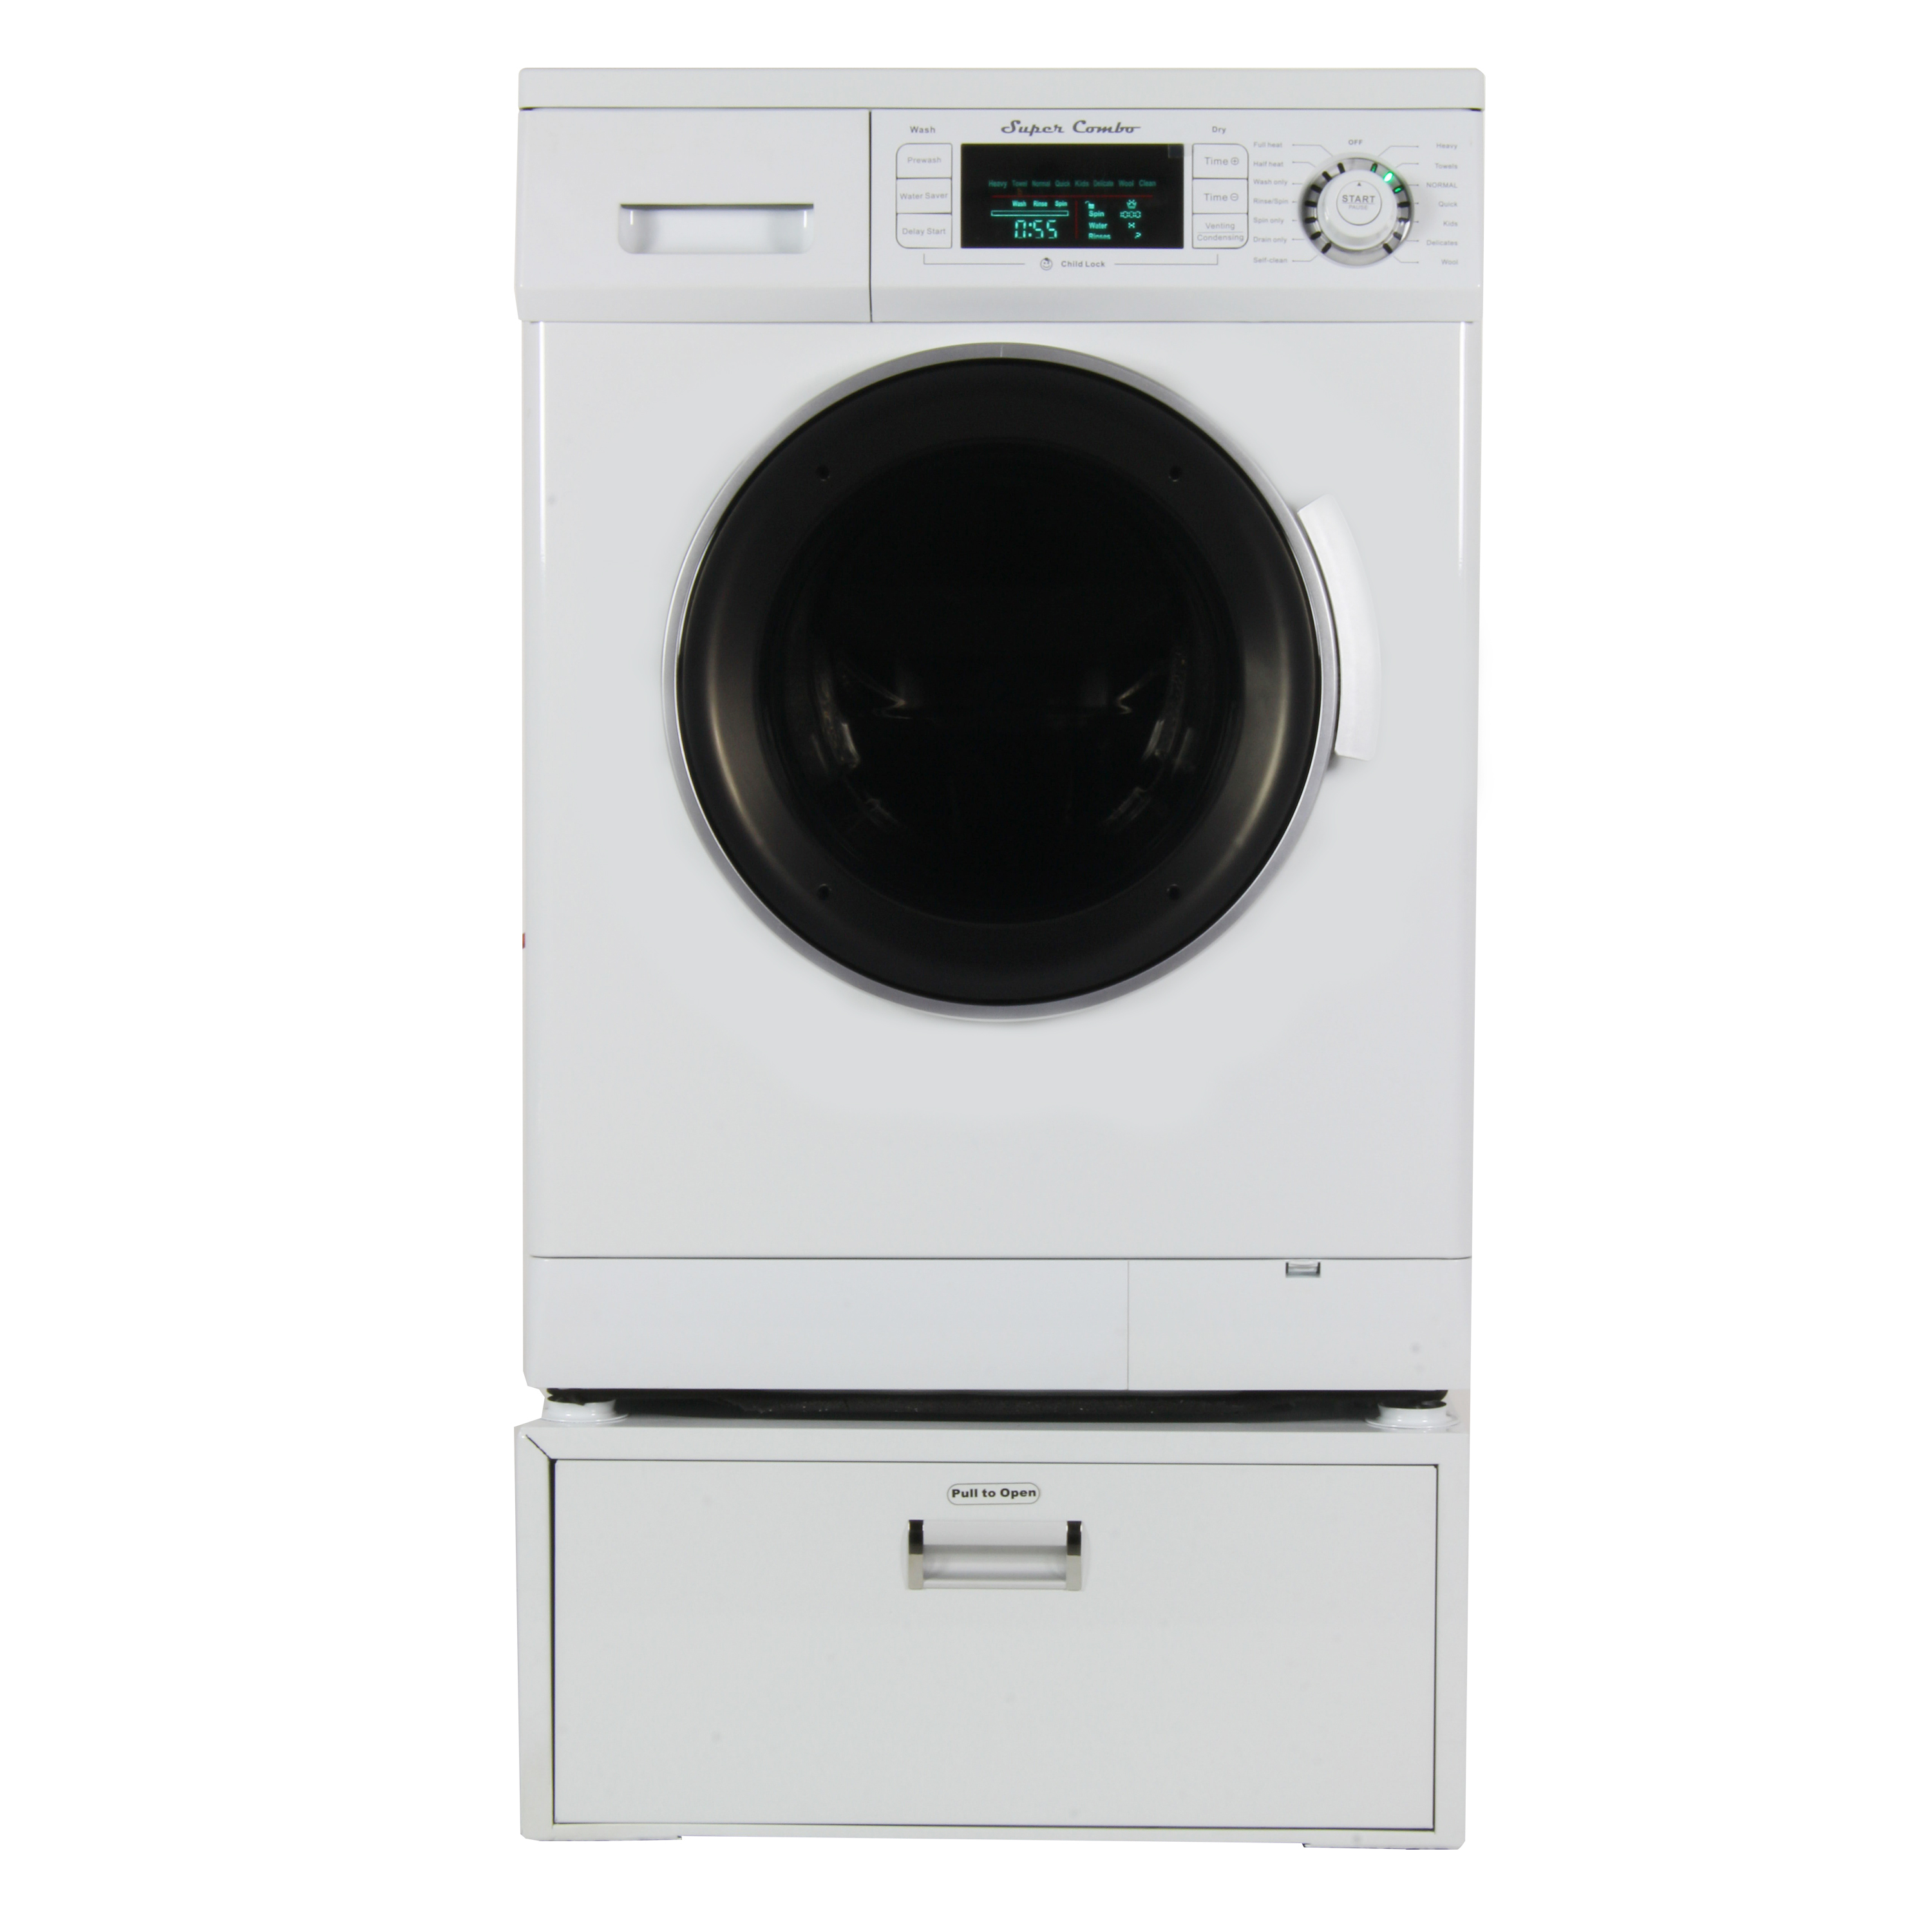 13  lbs All in one Combo Washer/Dryer with Pedestal, White